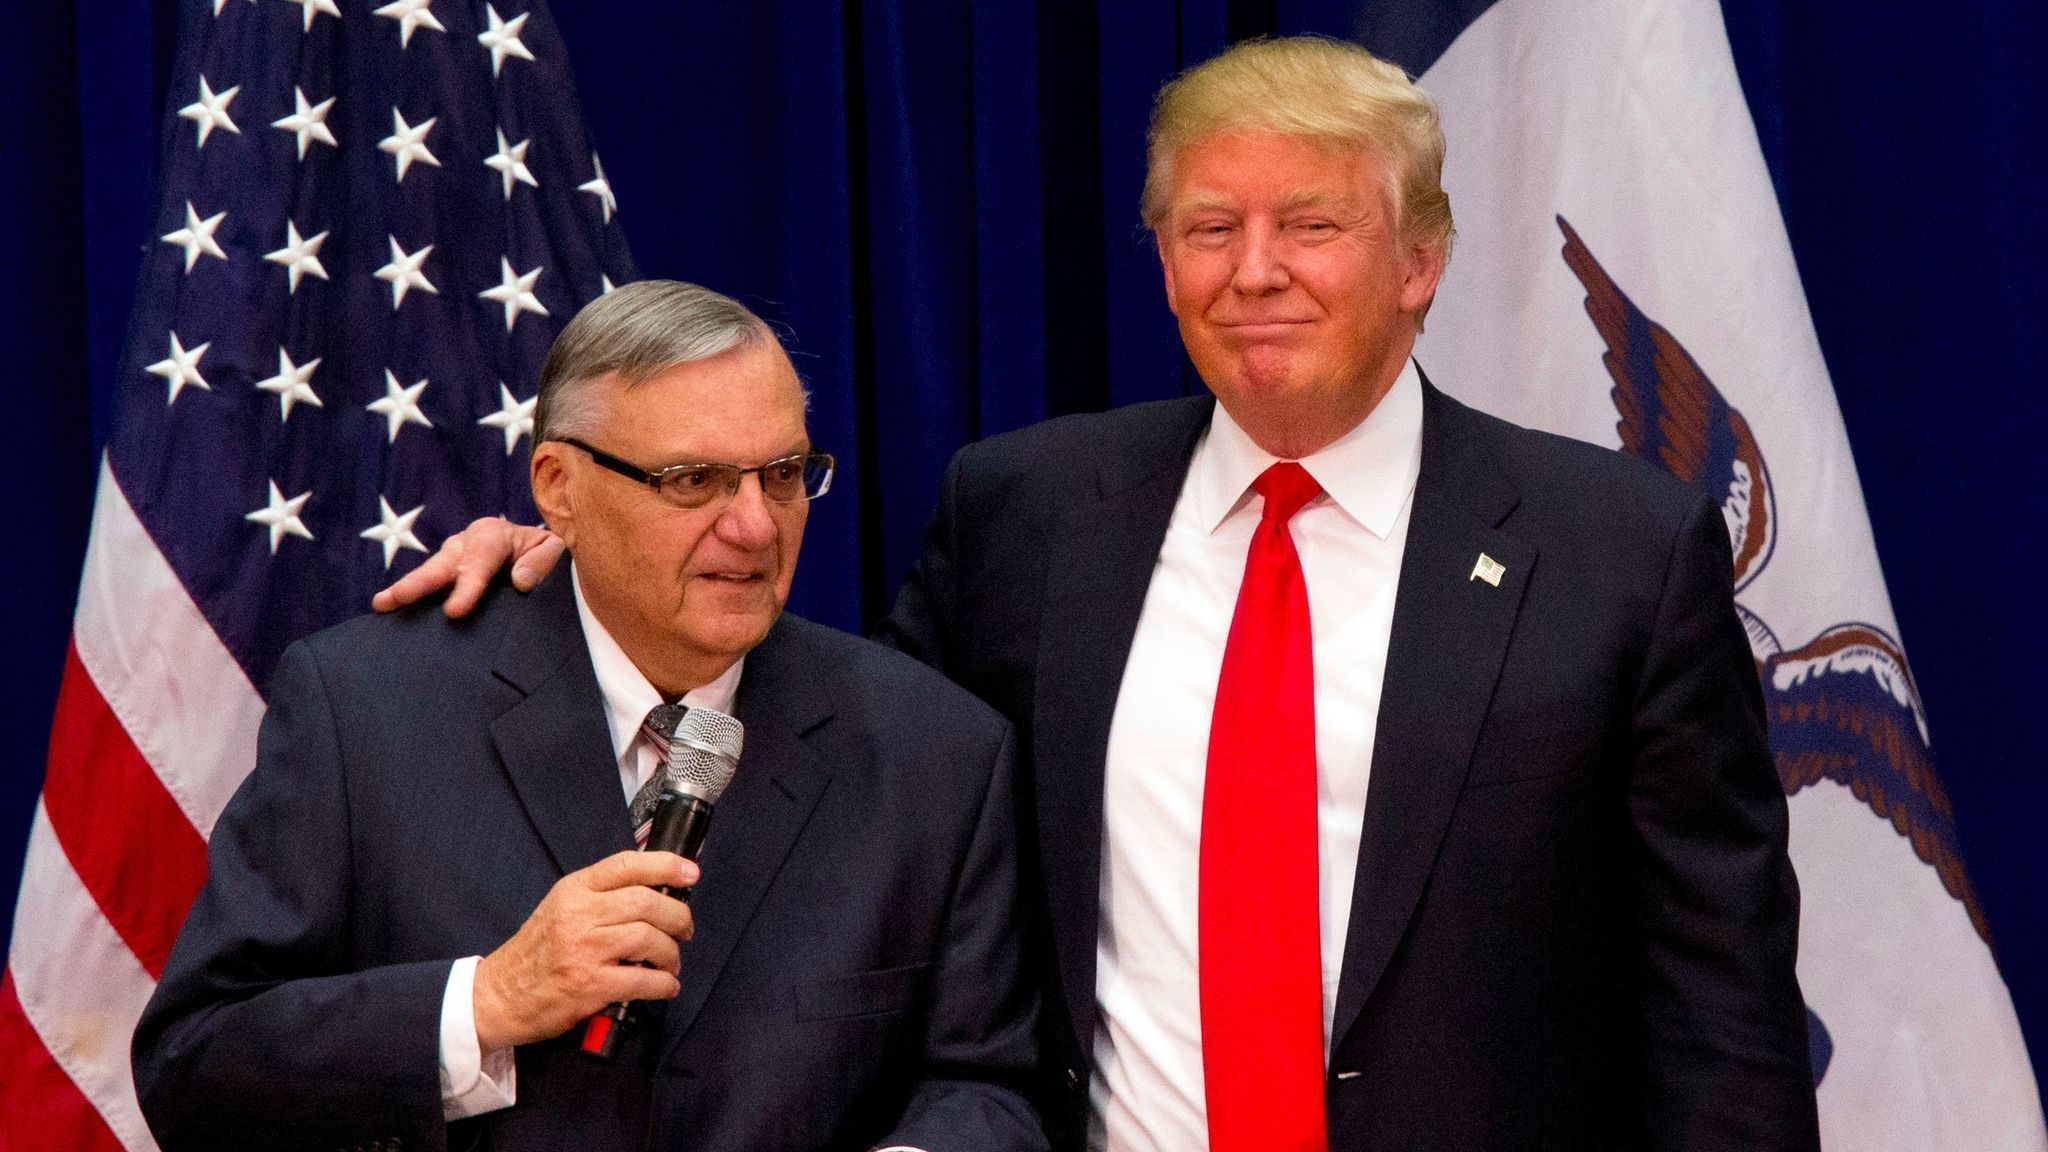 Trump Pardons Joe Arpaio a former Arizona Sheriff - Newslibre